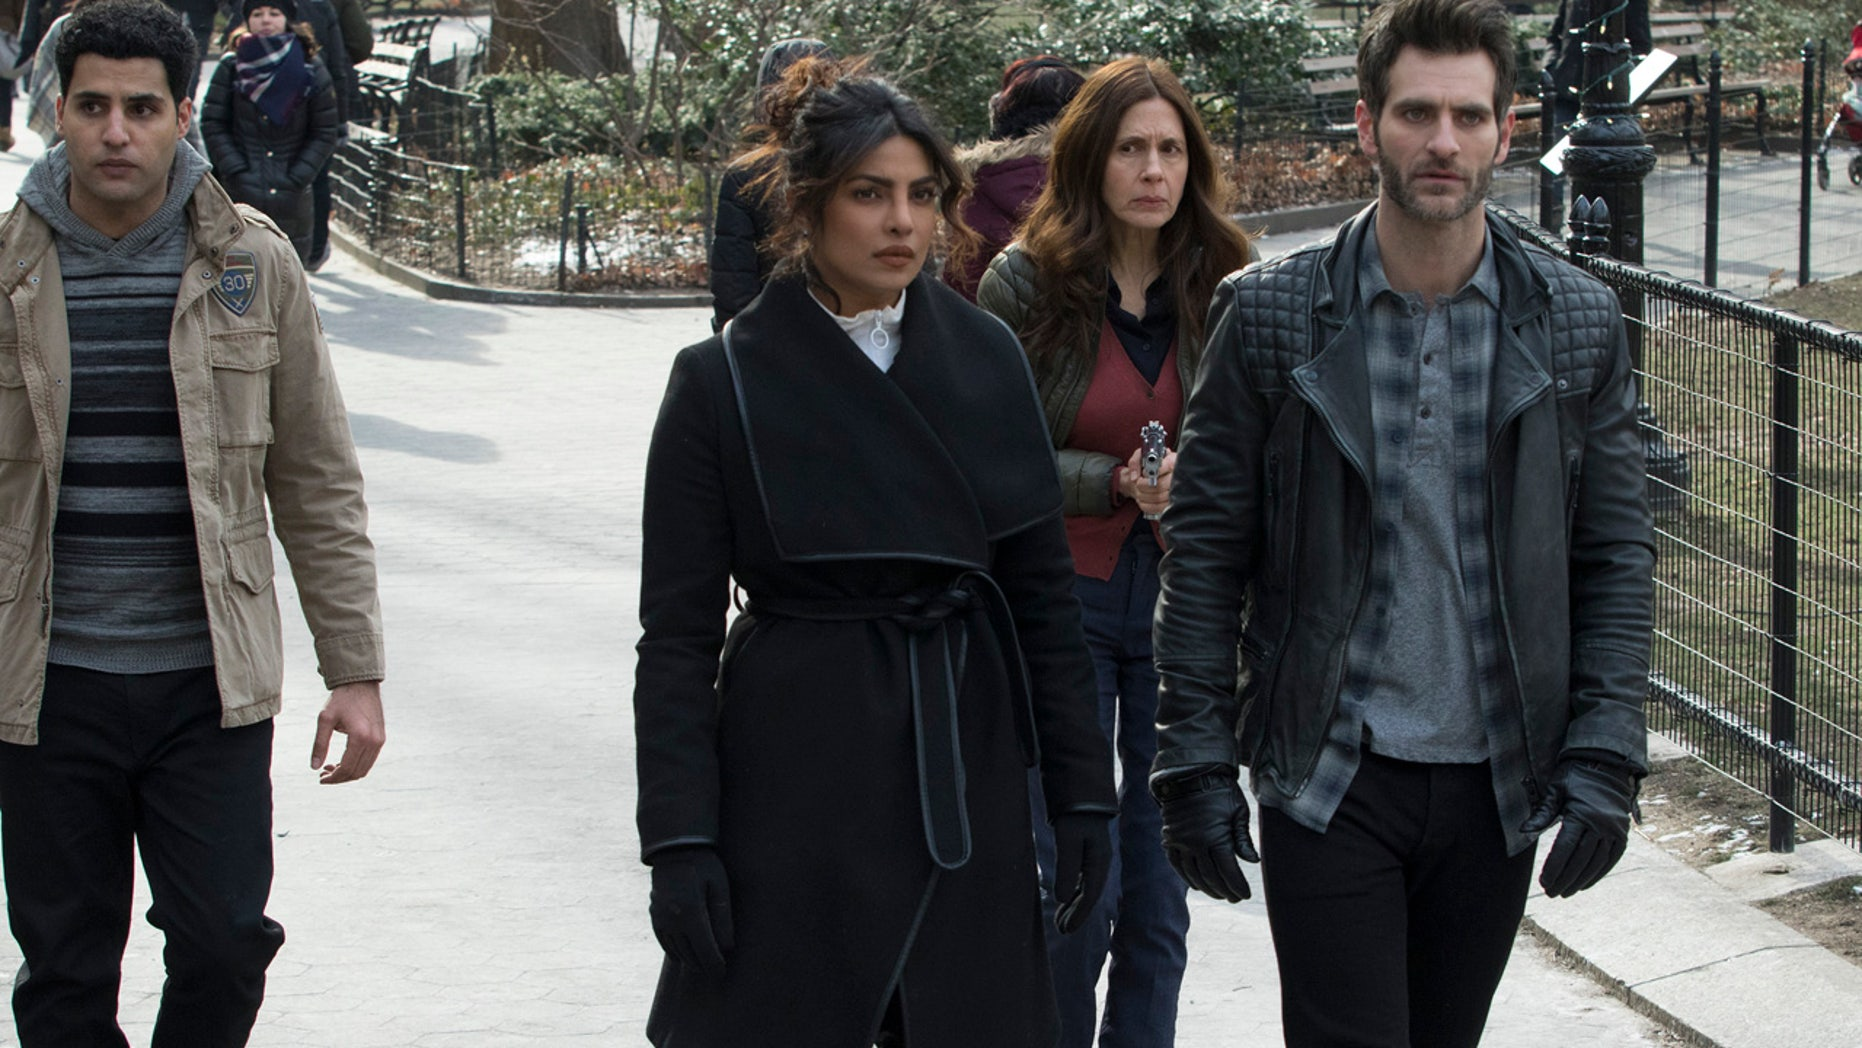 """Priyanka Chopra and her cast mates sparked online backlash after a recent epsiode of """"Quantico"""" that involved Indian nationalists in a terrorist plot."""